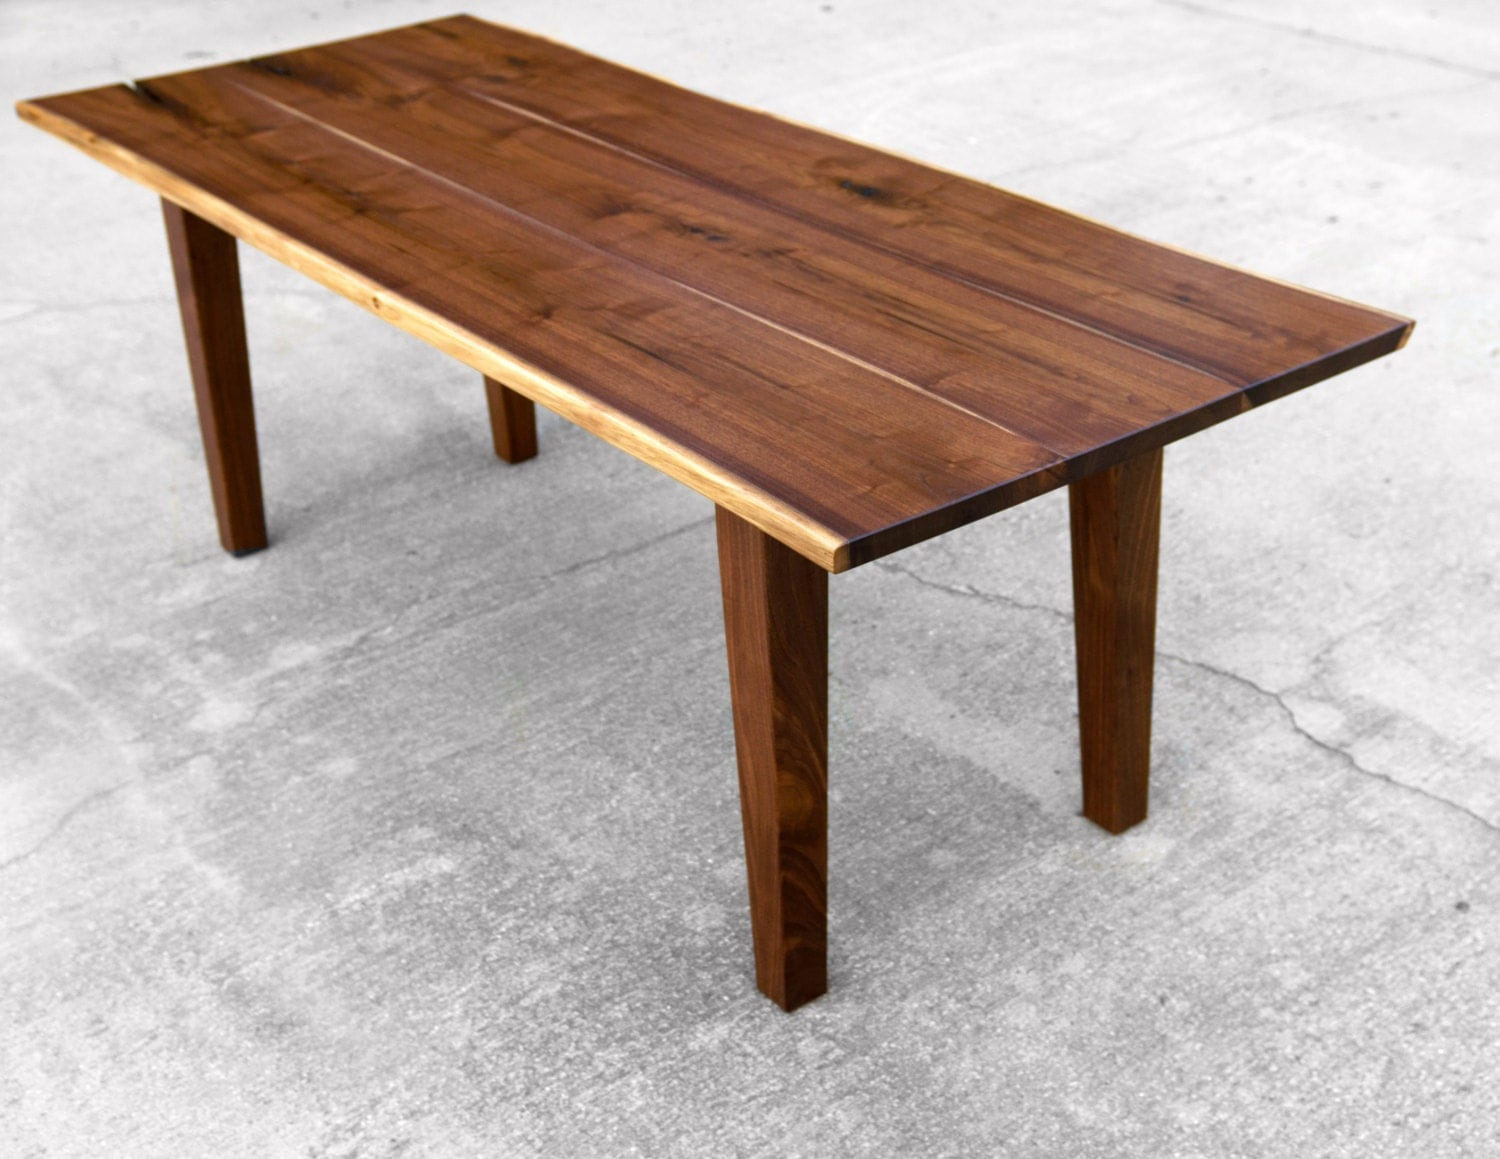 Walnut live edge dining table -  Zoom